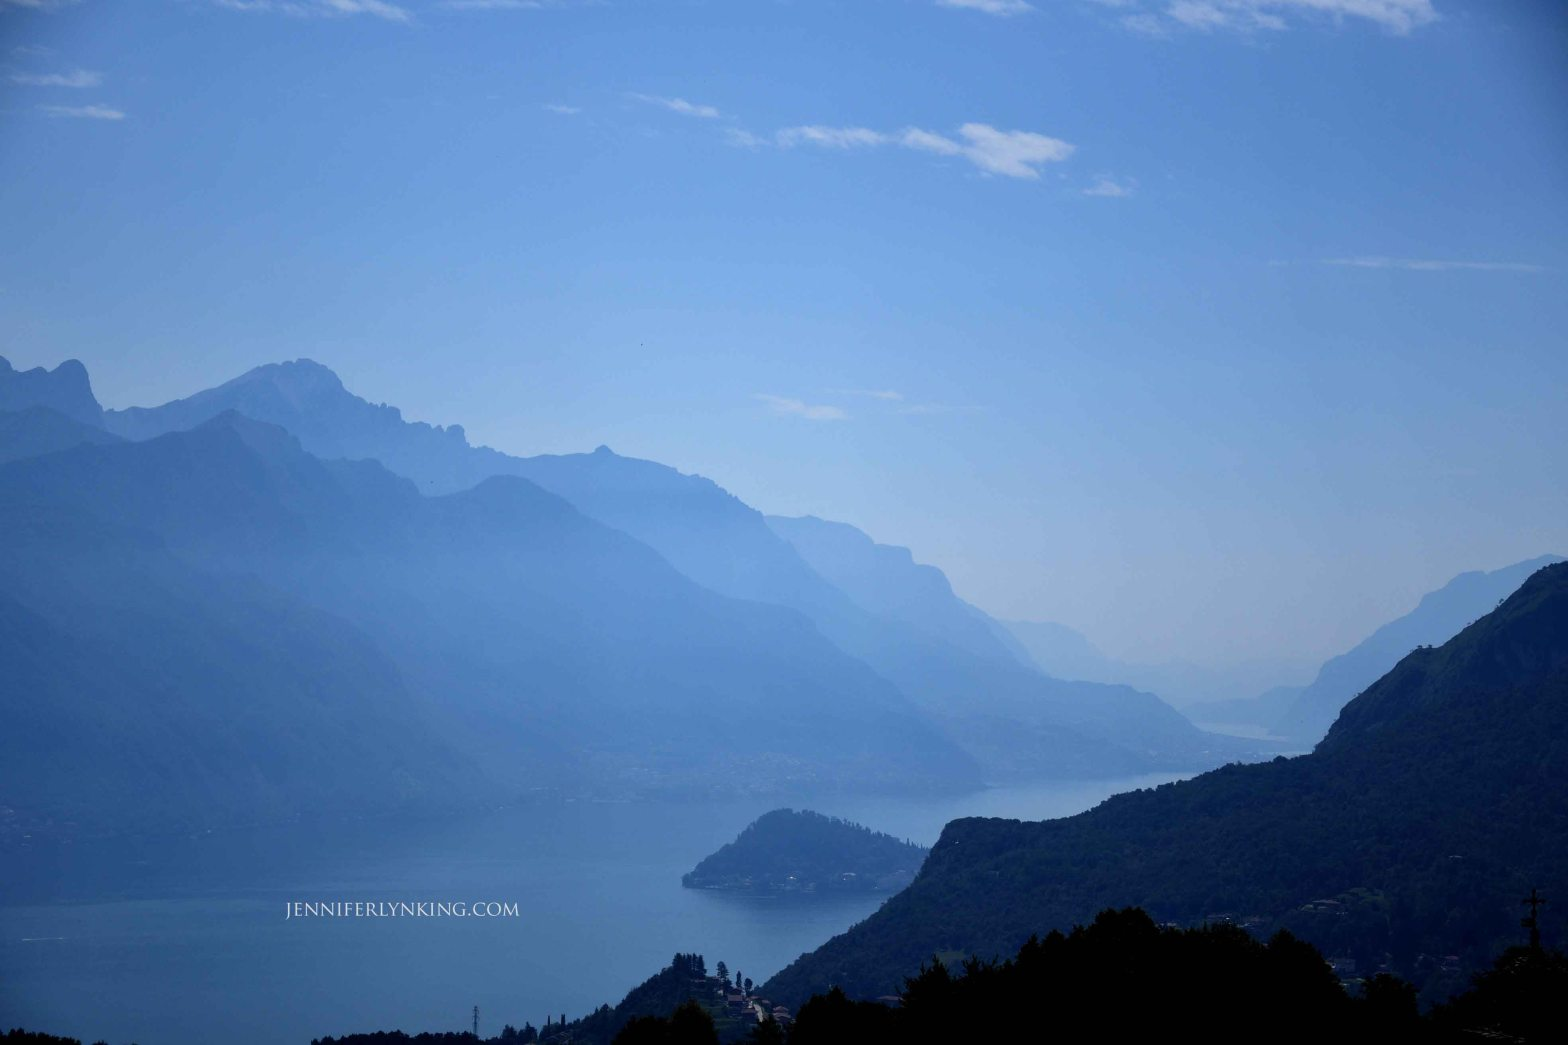 Lake Como, the view from the Alps -- sheer beauty